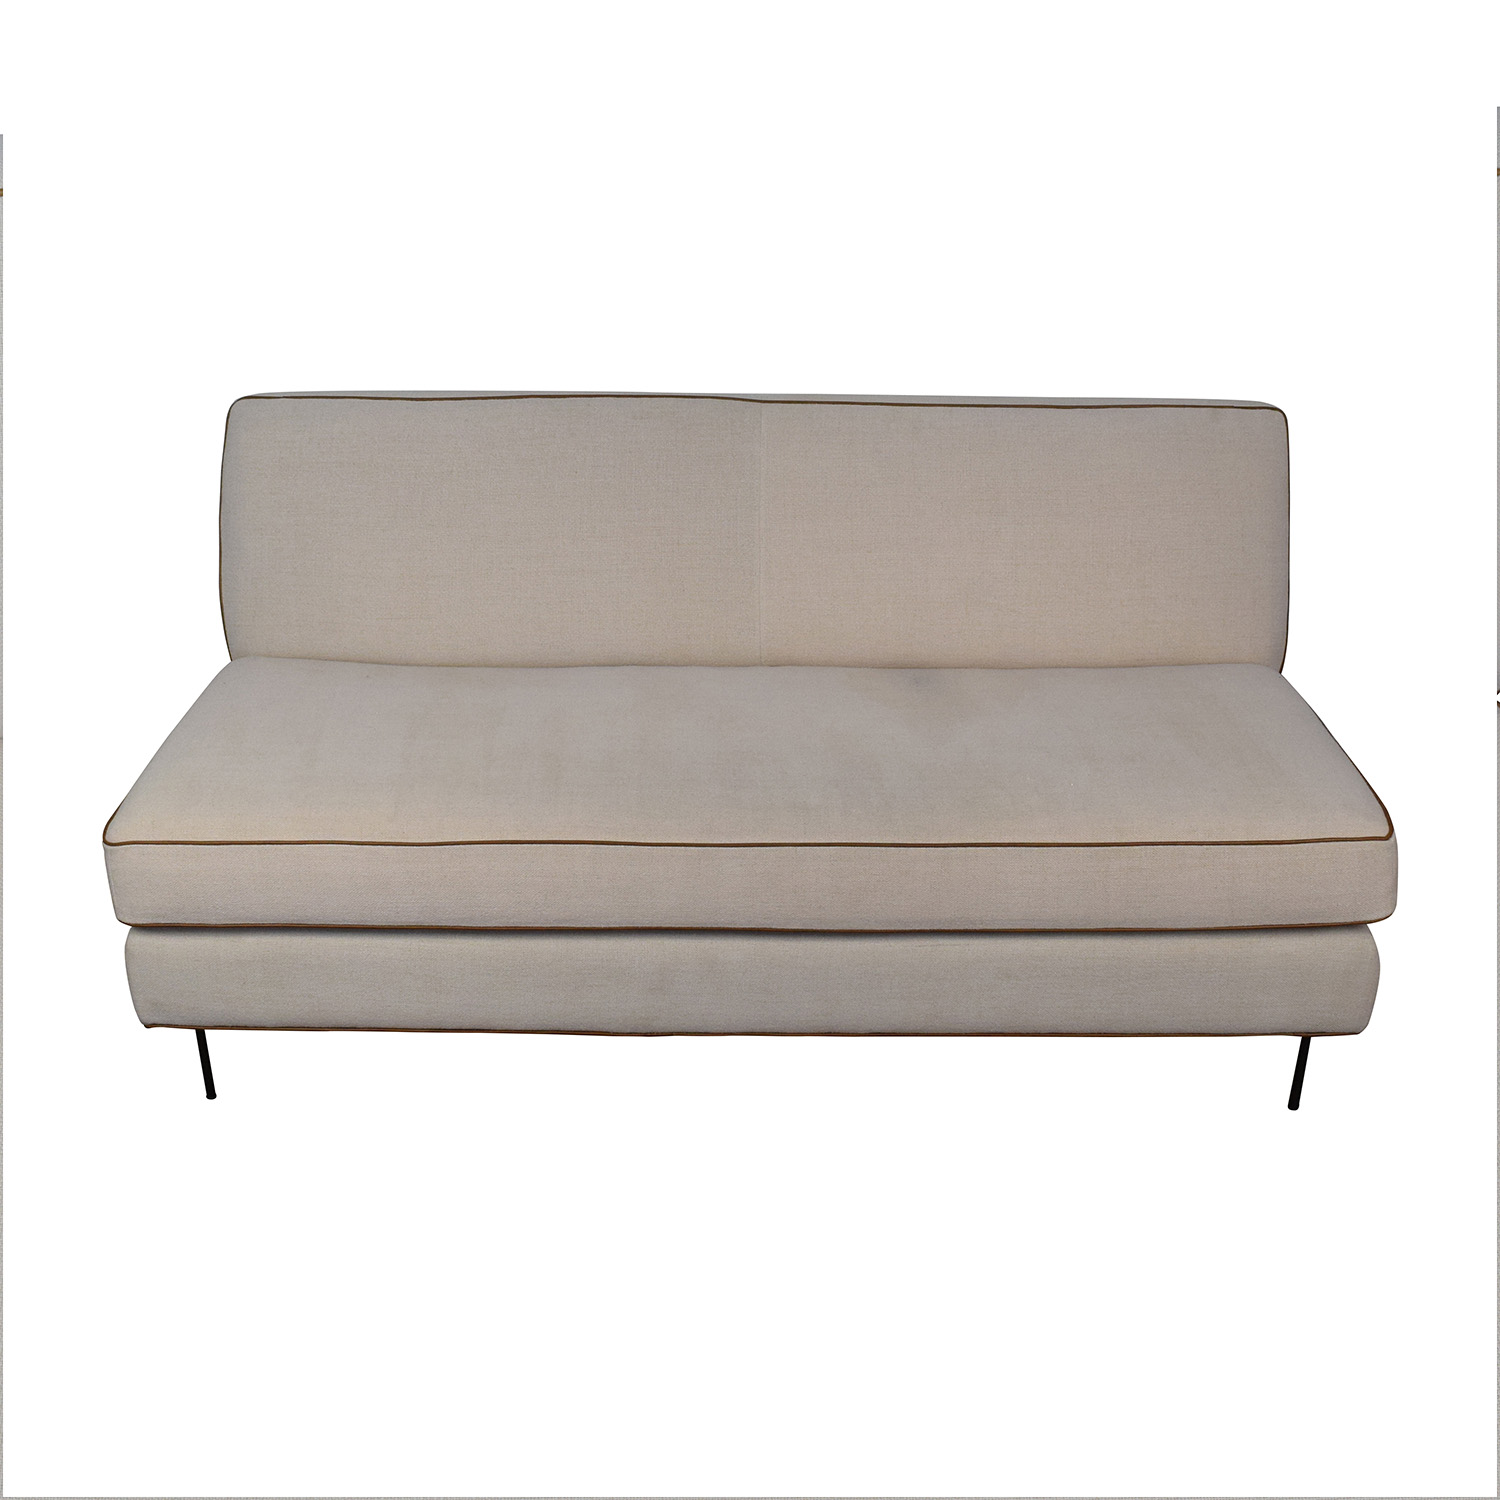 ... West Elm West Elm Commune Armless Sofa Dimensions ...